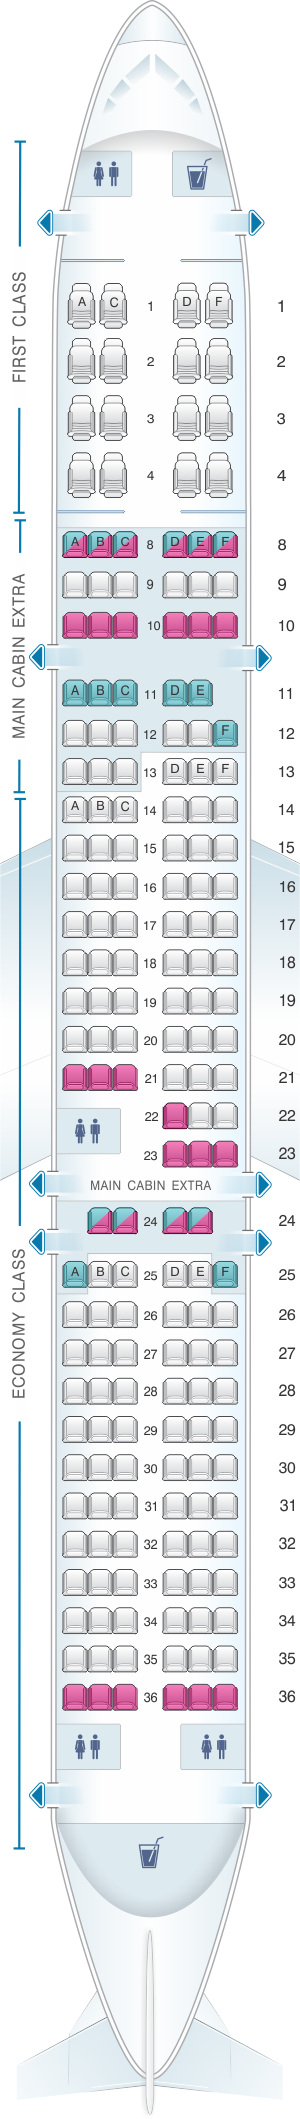 Seat map for American Airlines Airbus A321 181pax